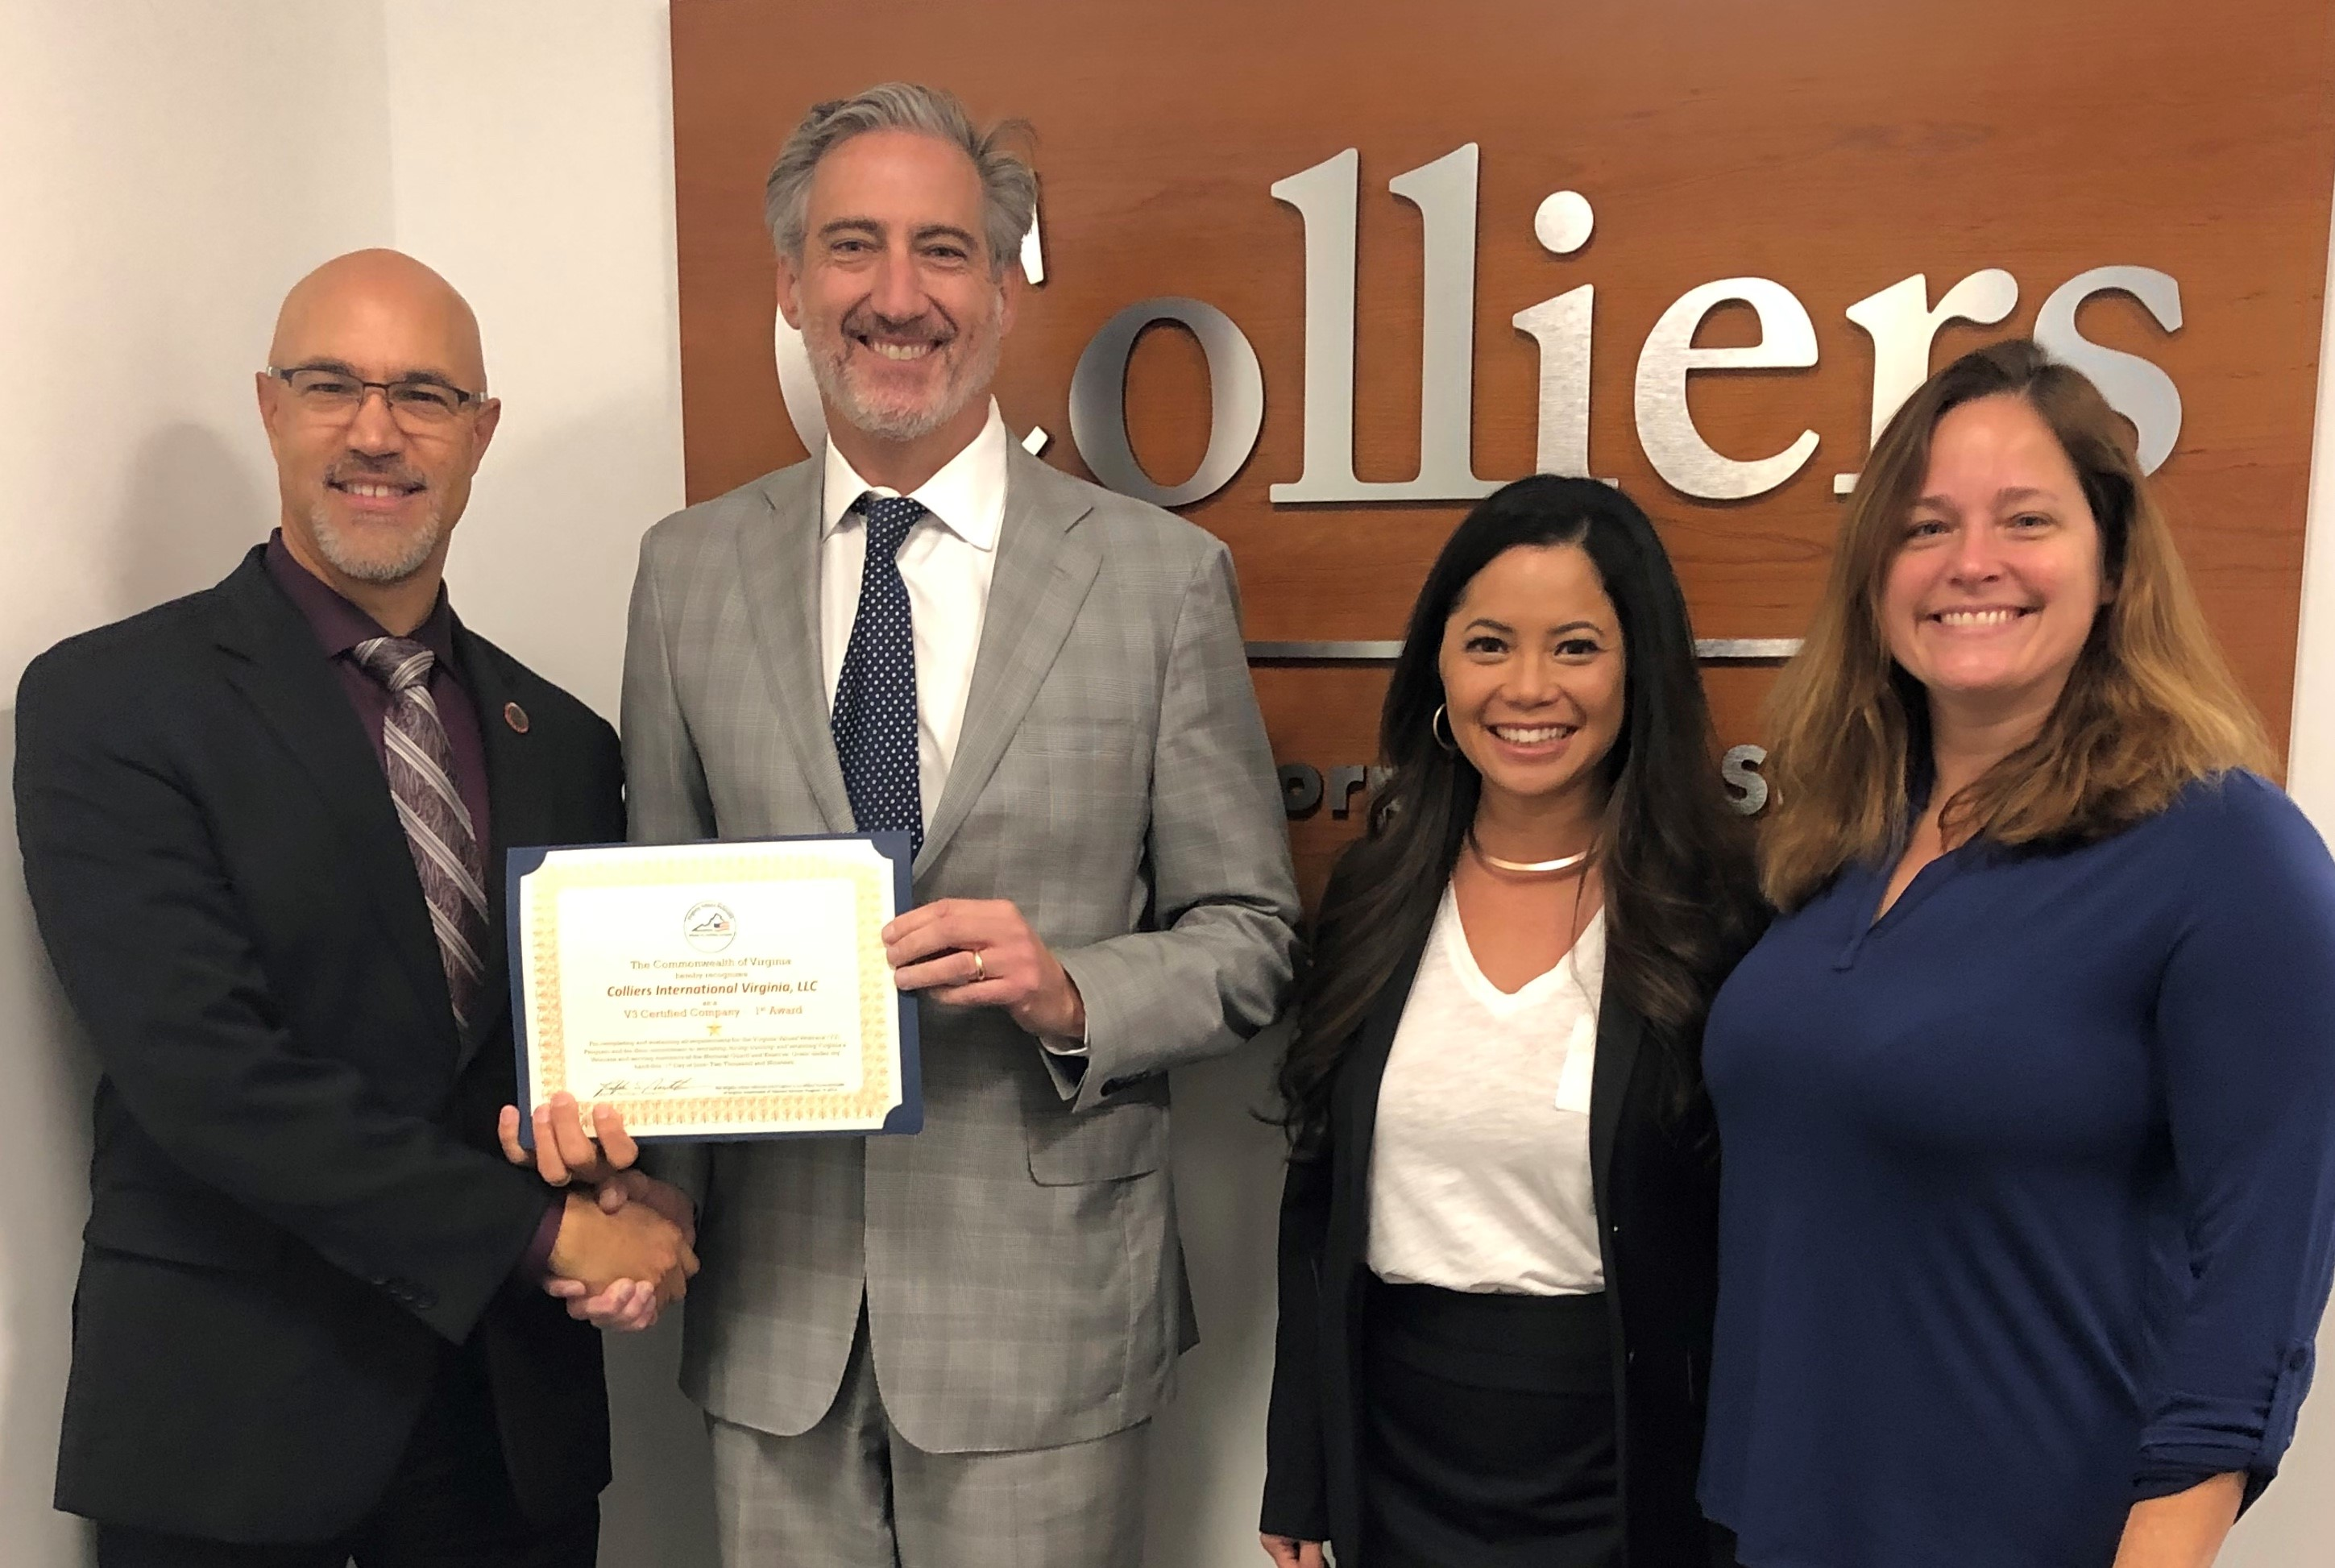 Colliers Virginia certified by Governor Northam as Virginia Values Veterans V3 organization